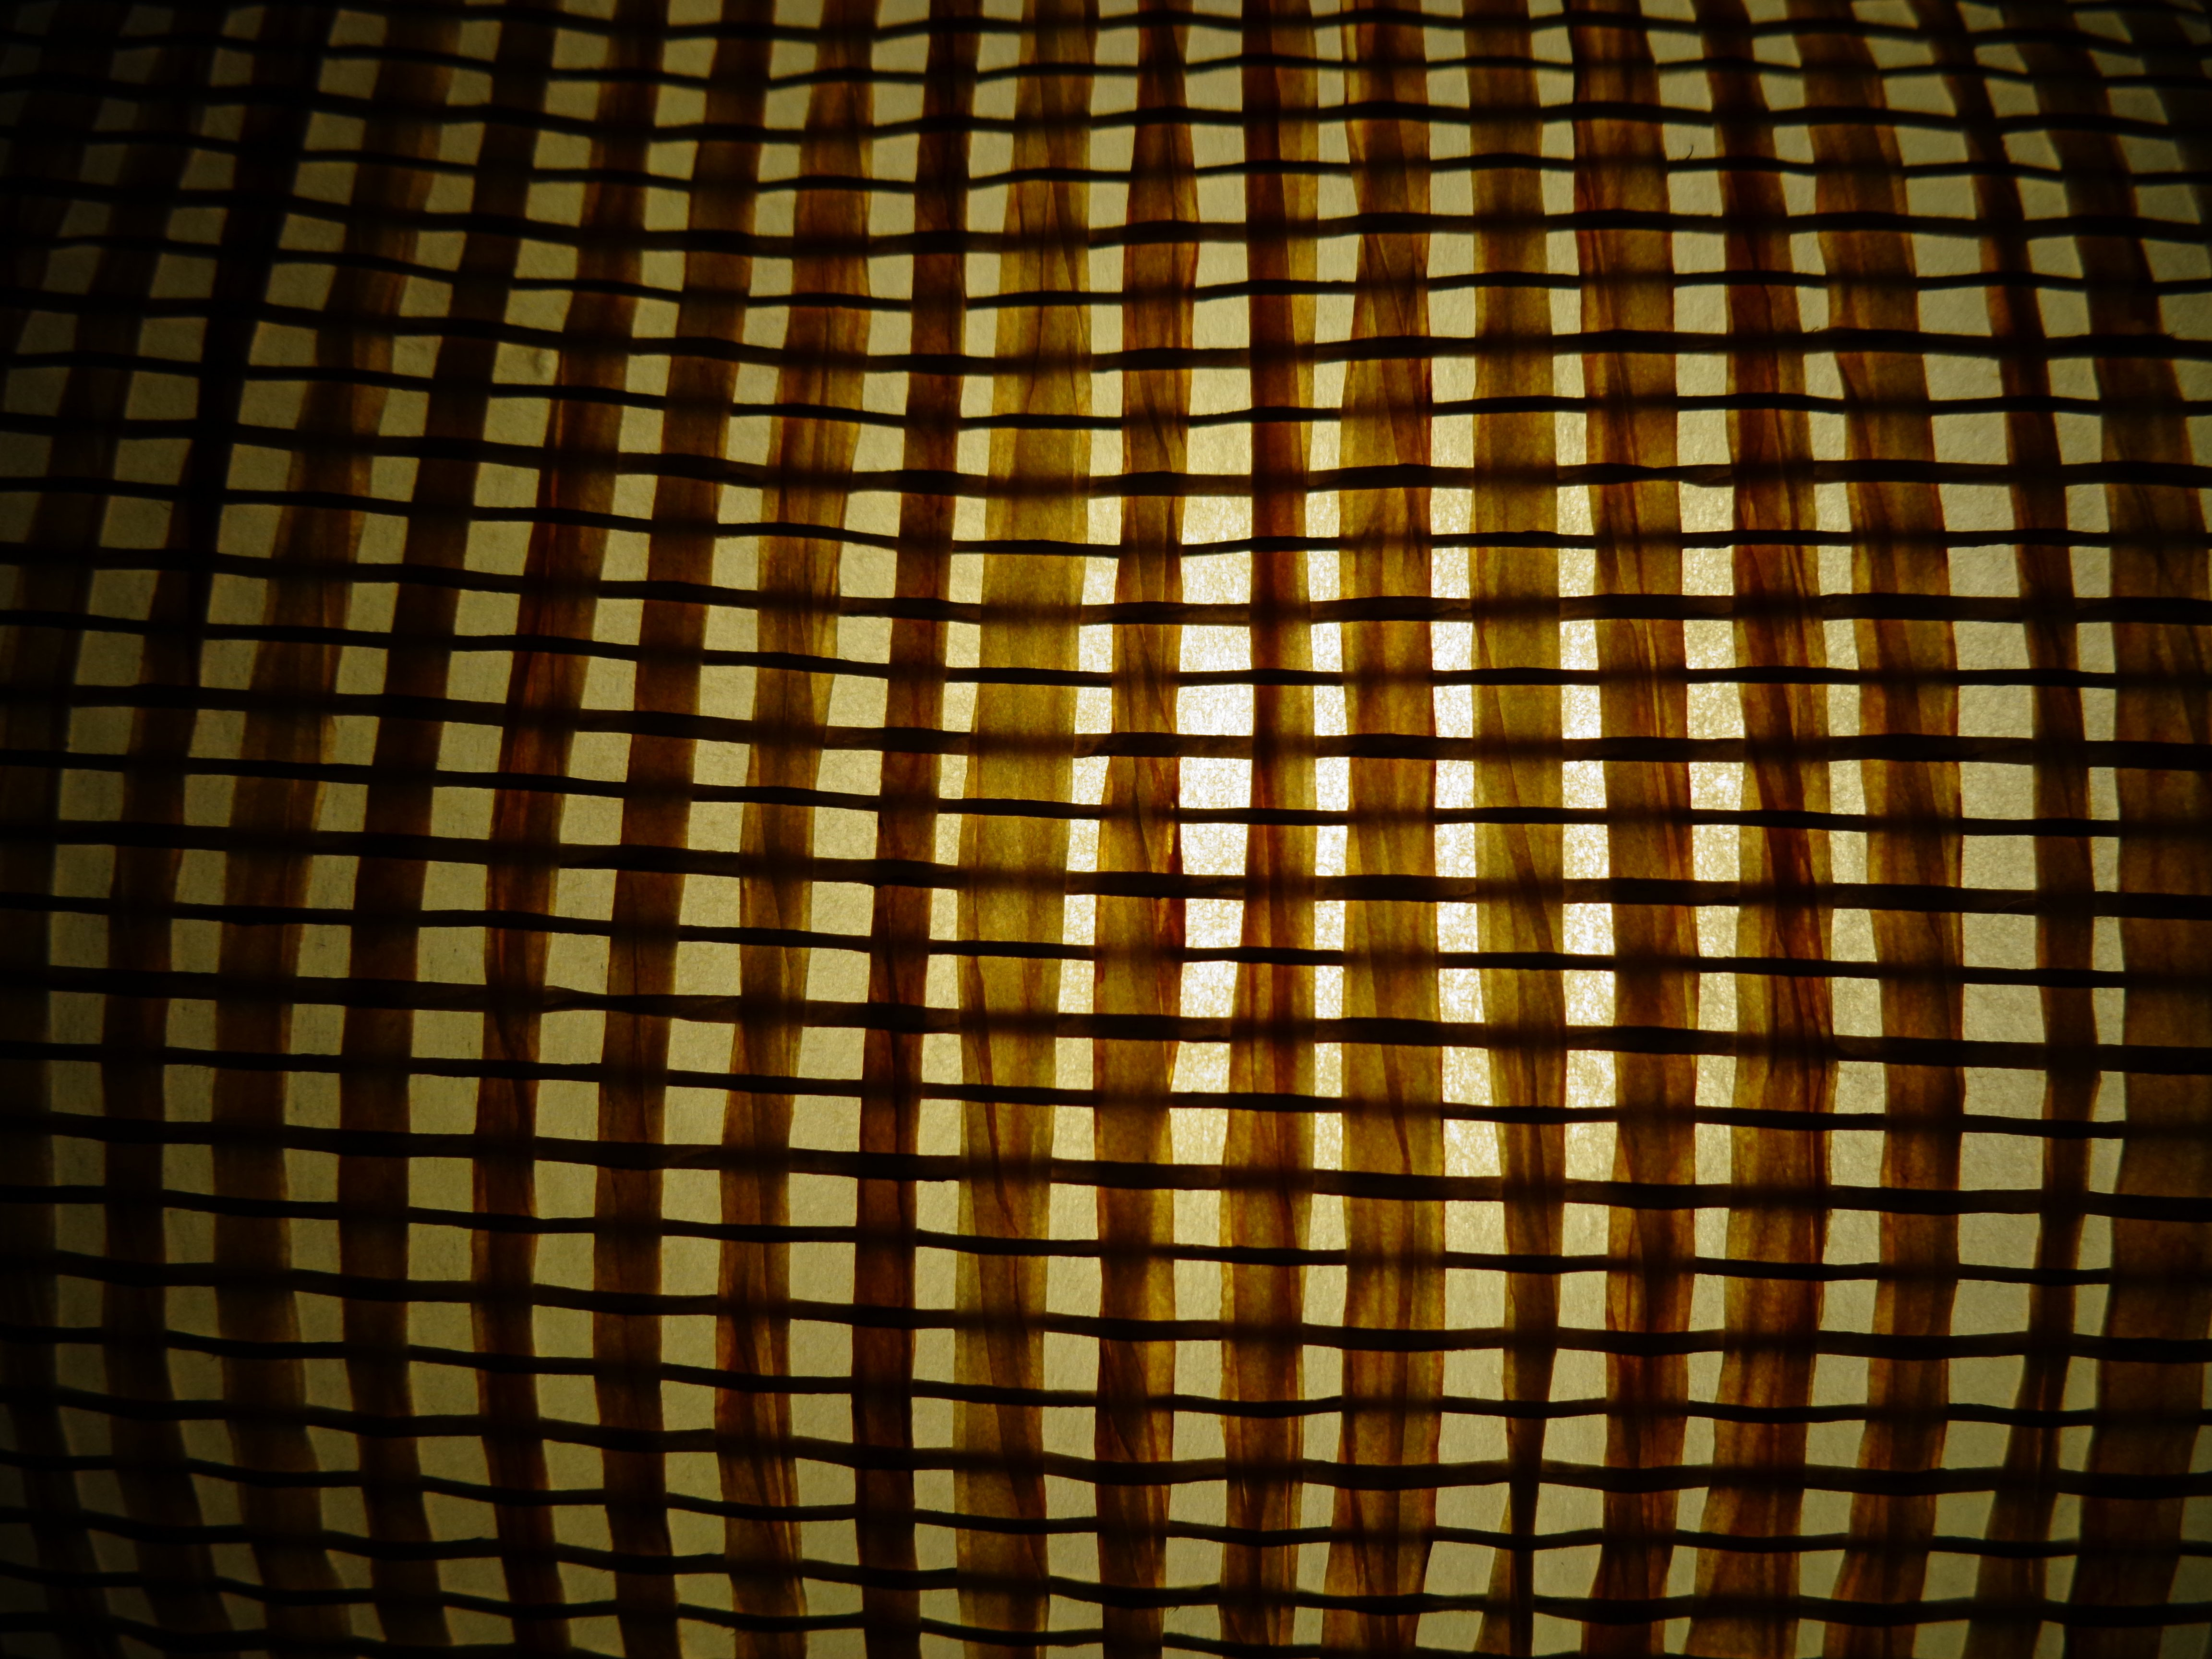 Woven Lampshade Close Up Texture Picture Free Photograph